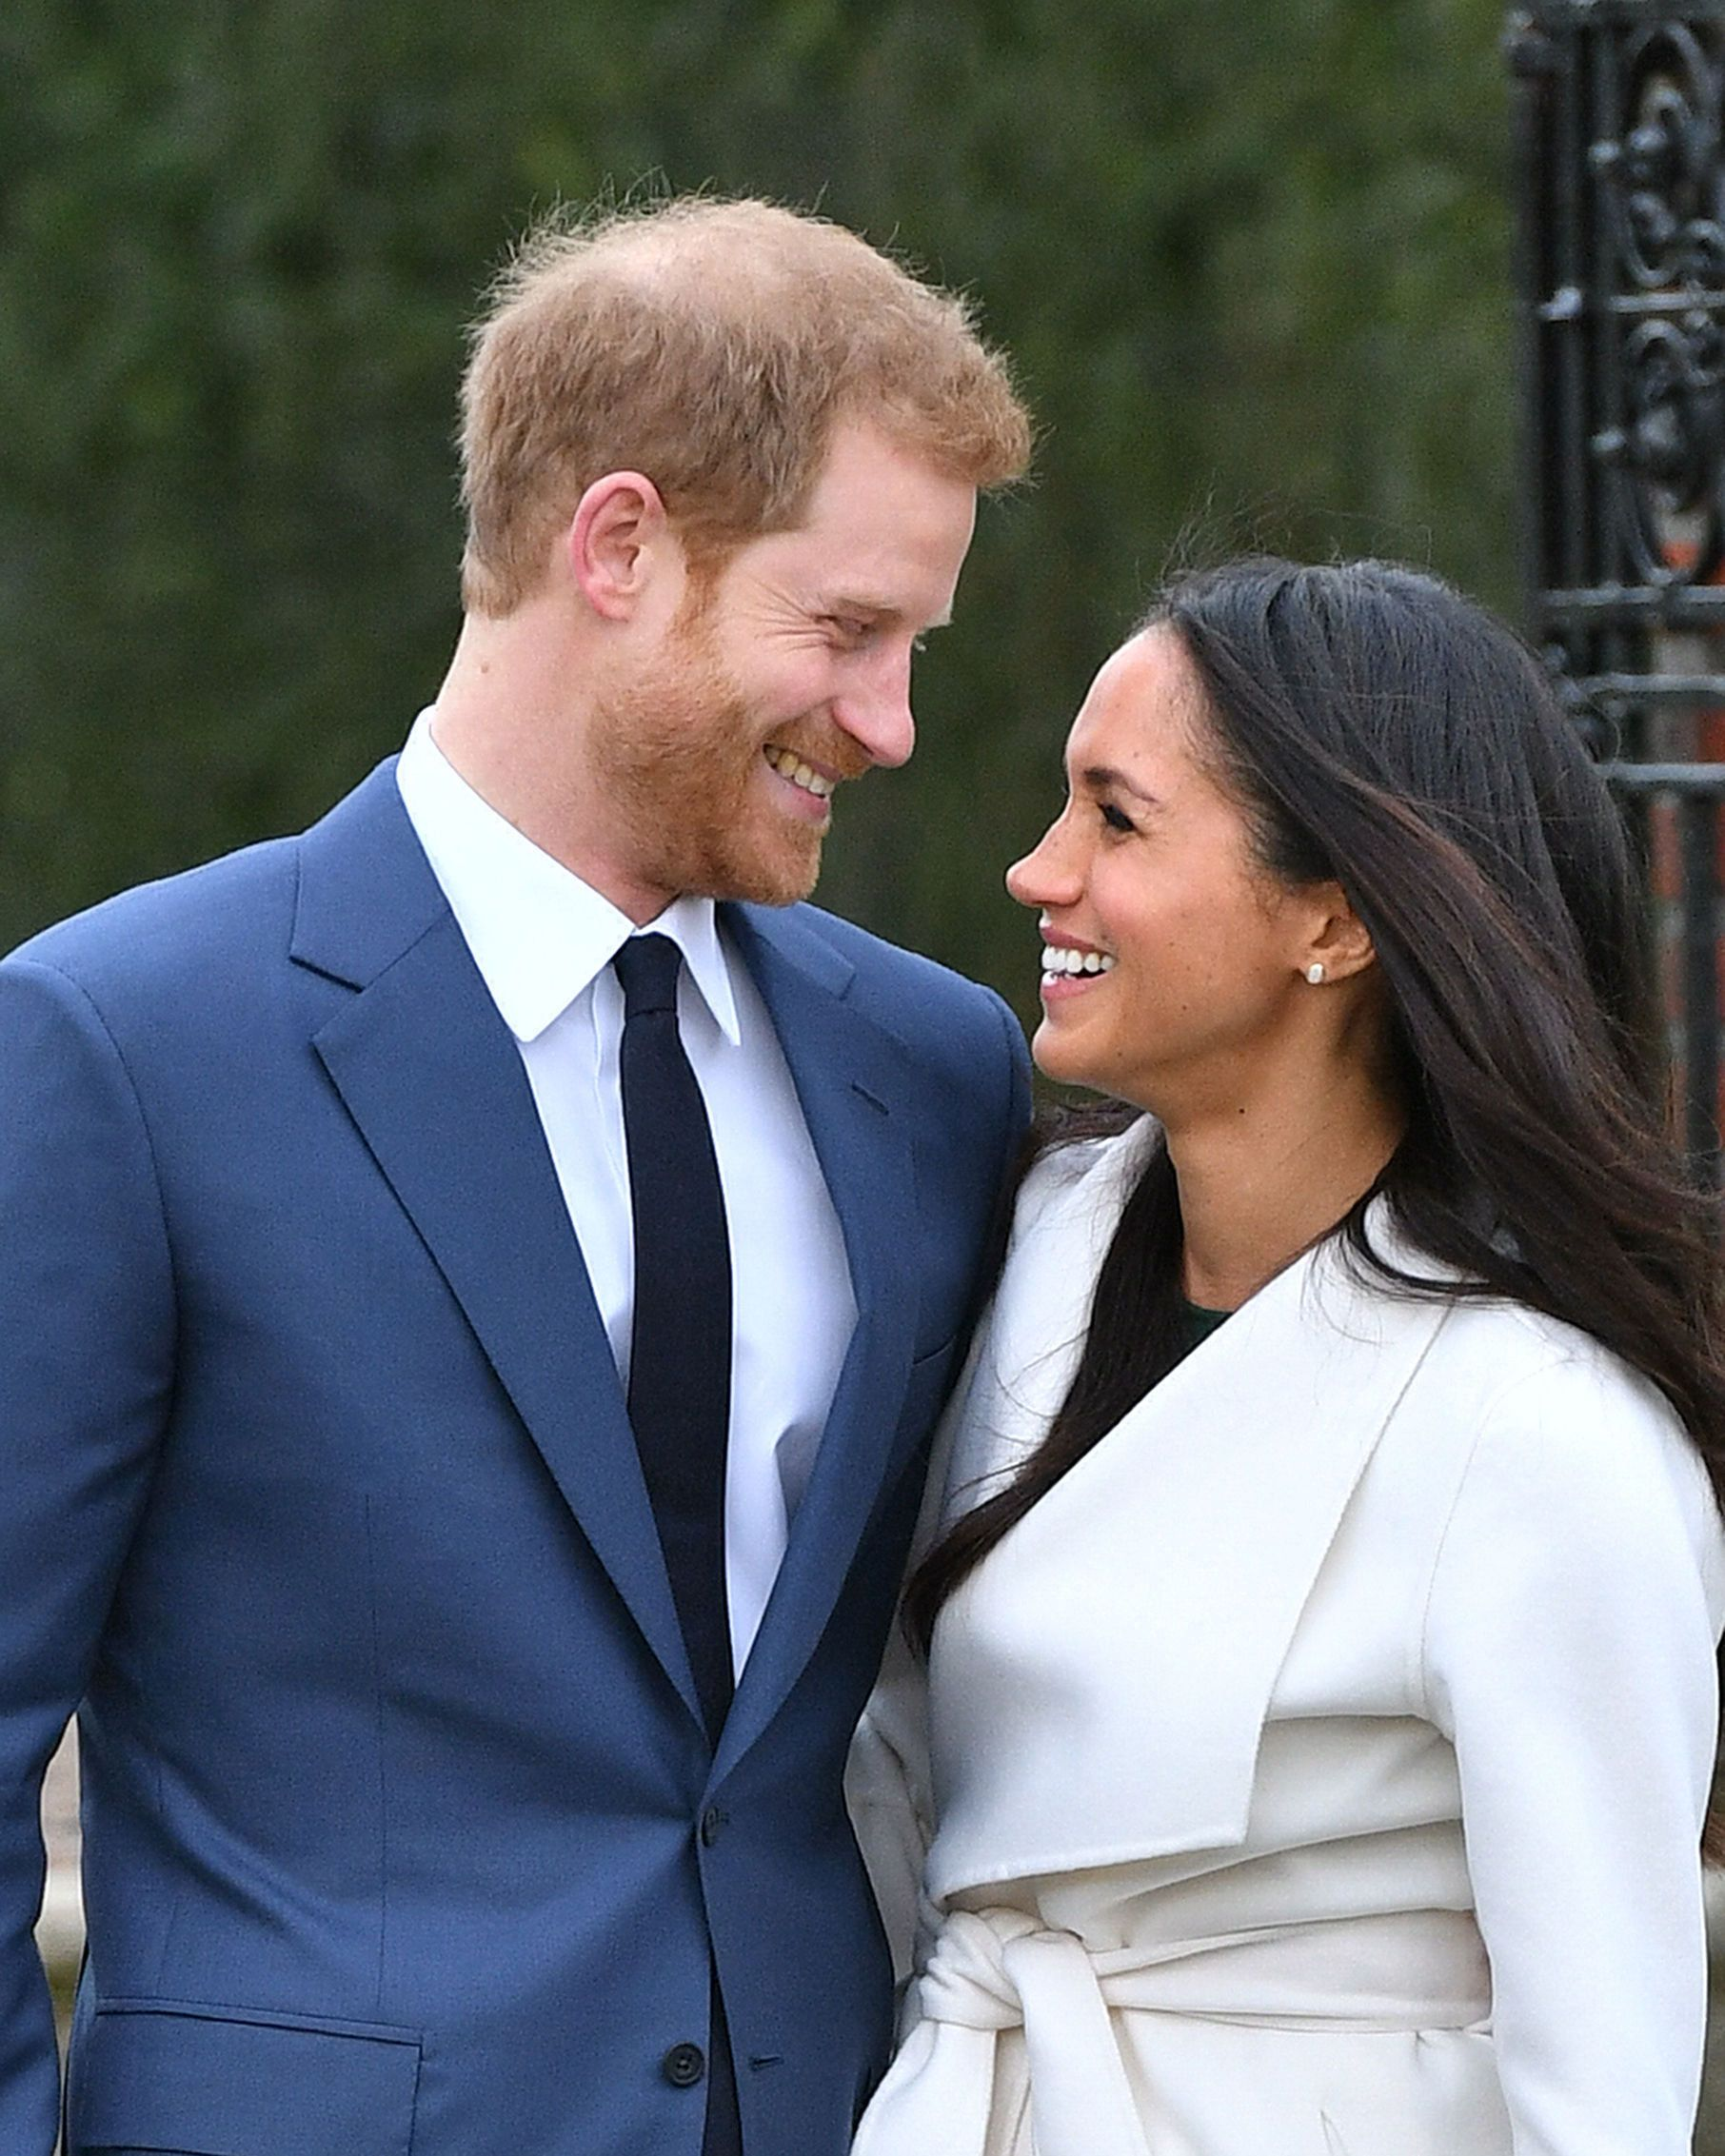 Prince Harry And Meghan Markle Make First Appearance After Announcing